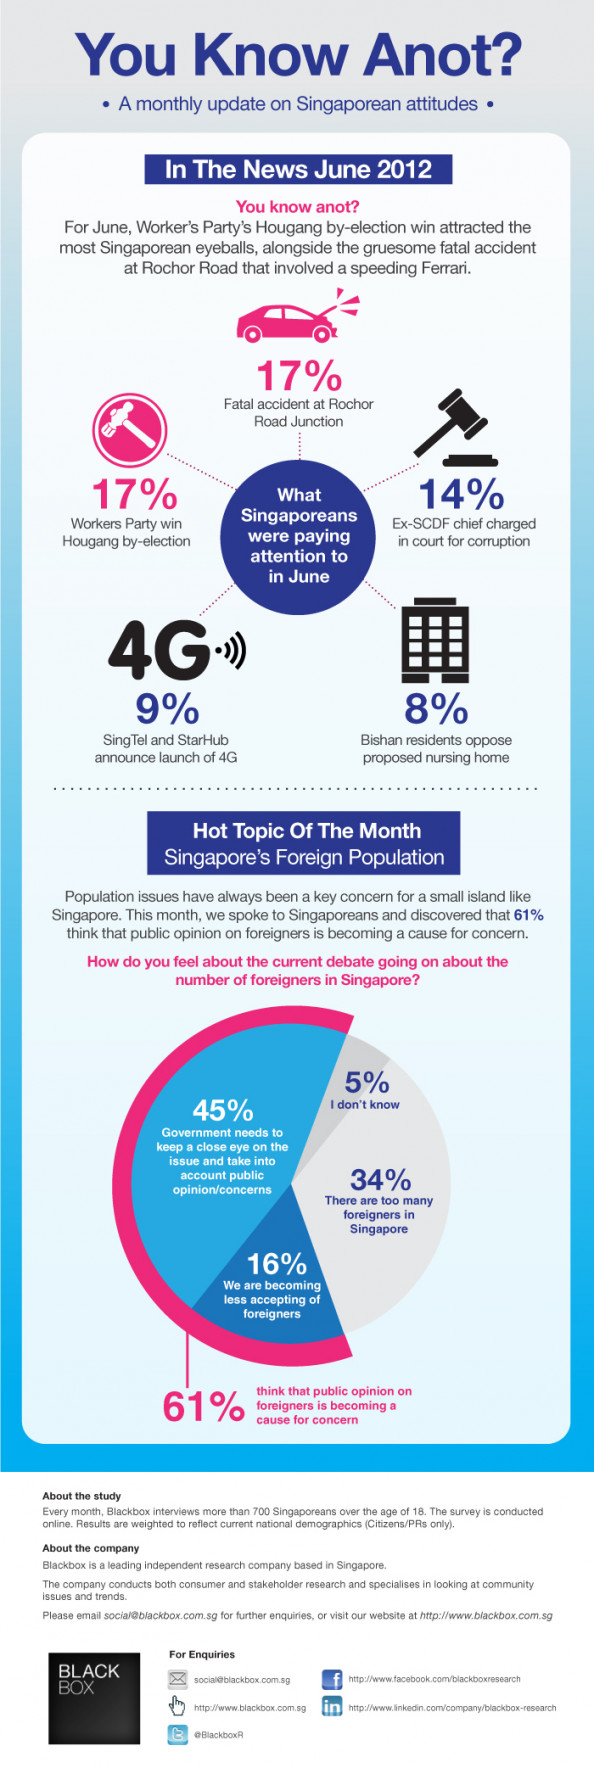 You Know Anot? Singaporean Sentiments, June 2012 Infographic